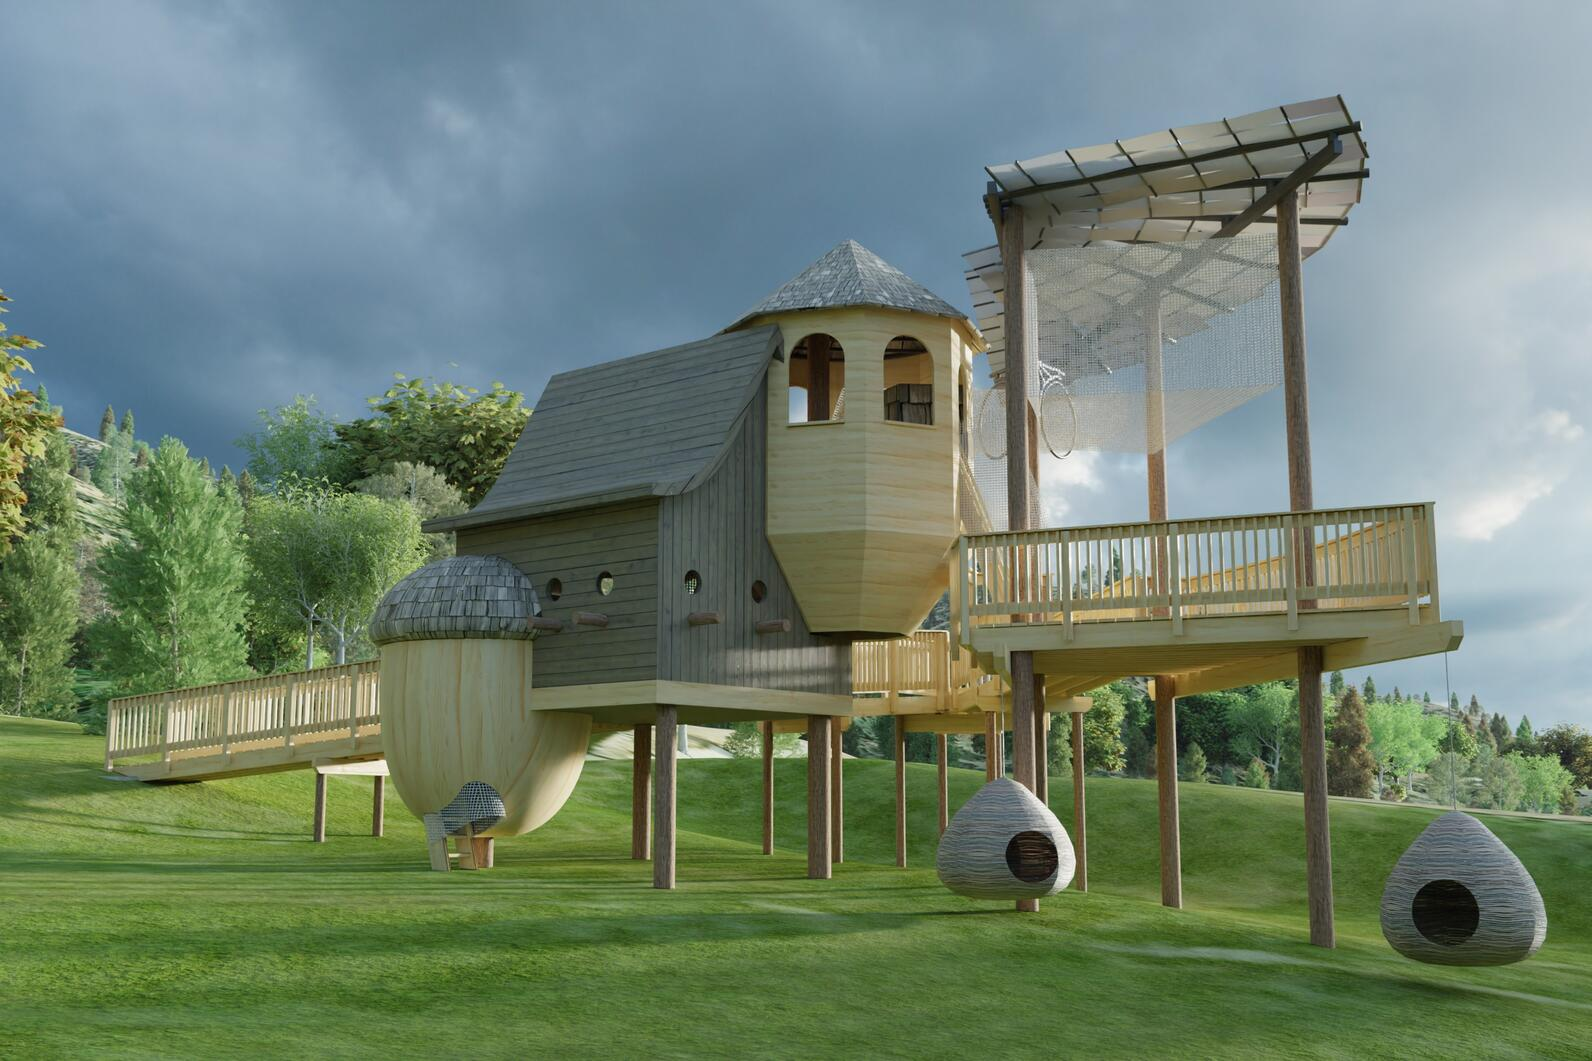 plans for the treehouse